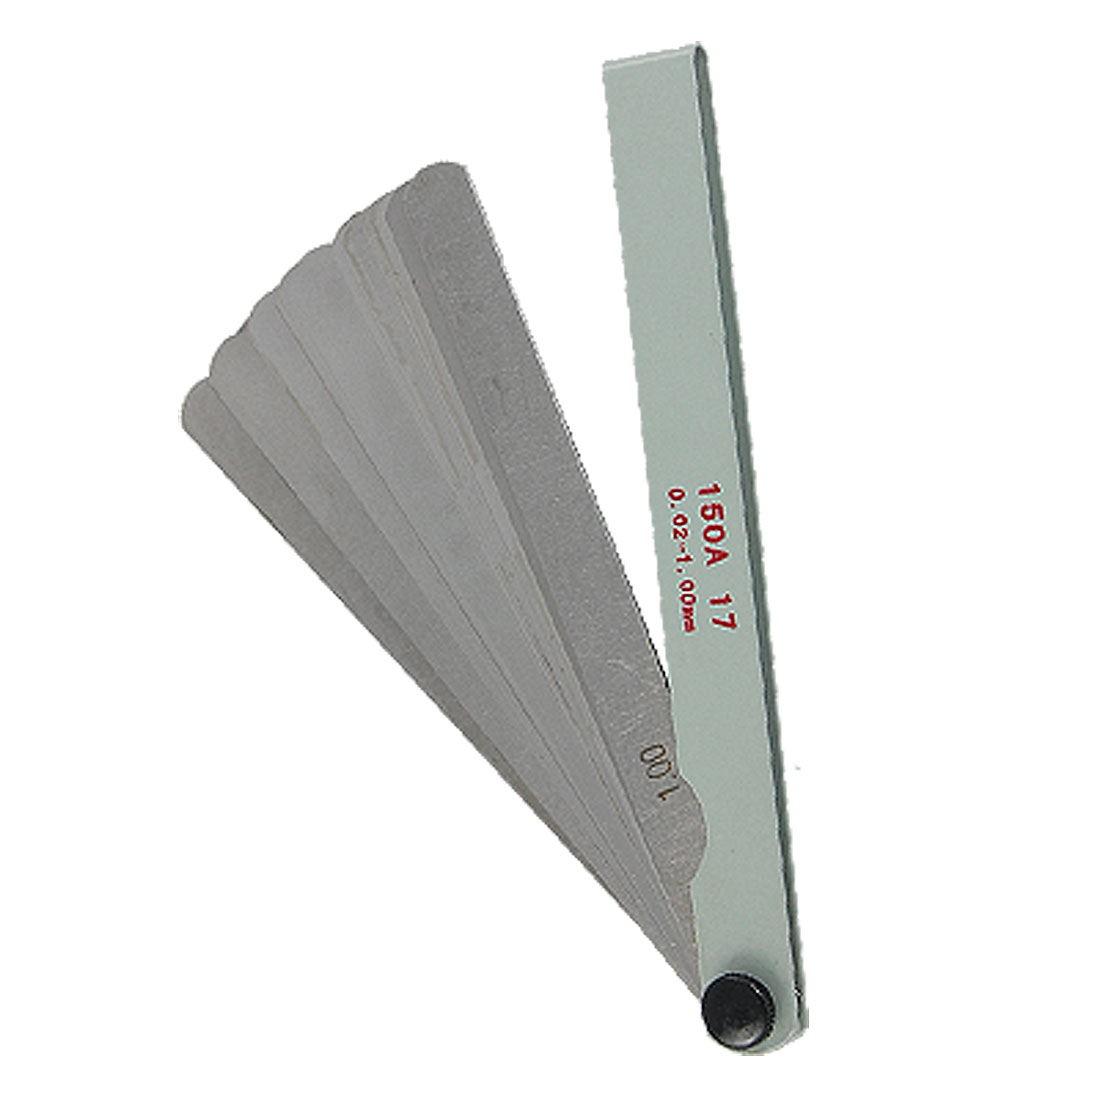 "6"" Length 0.02-1mm Thickness Measure Feeler Gauge"